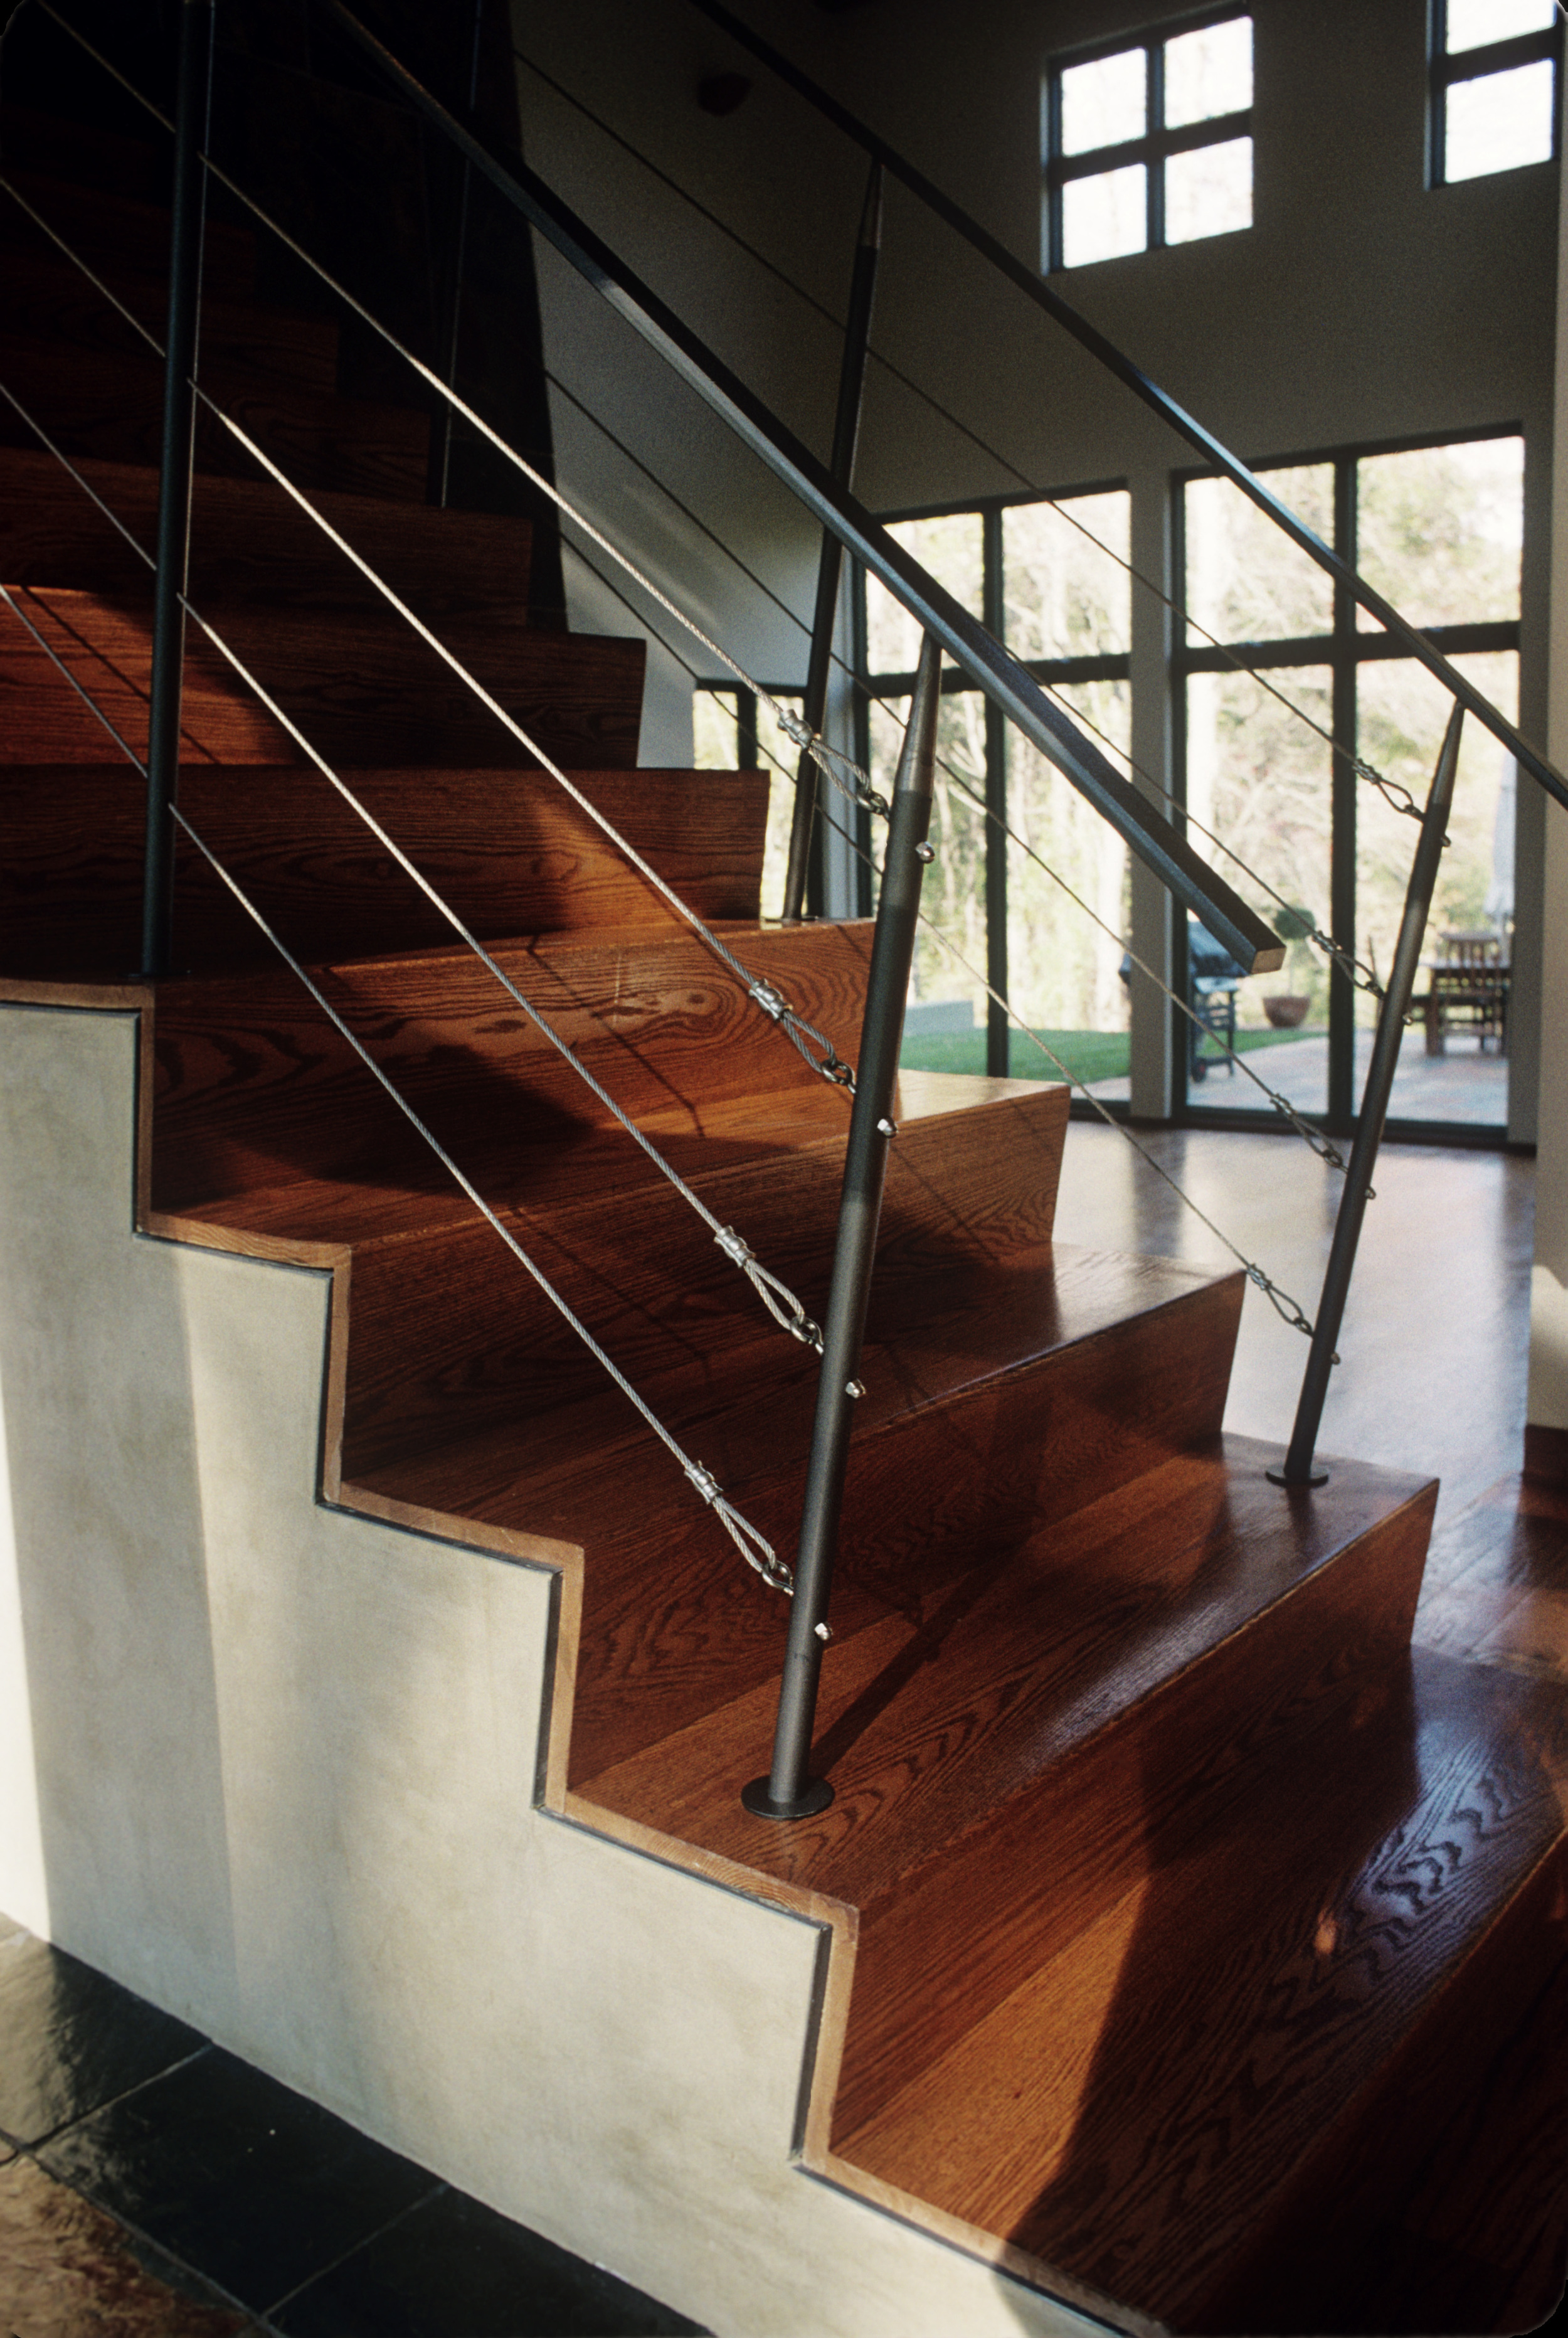 The Open Stair